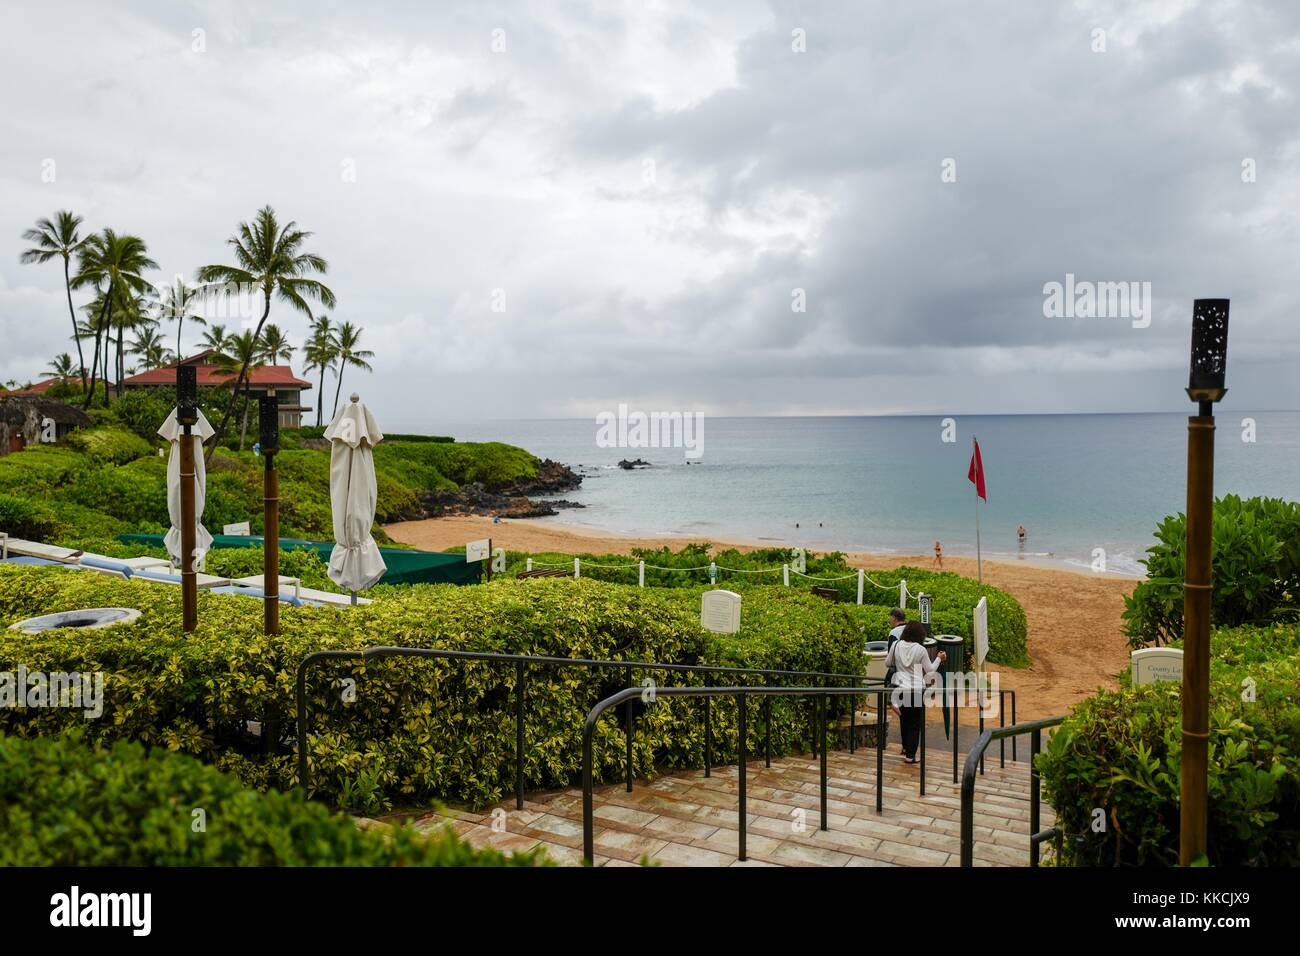 Rainy and overcast day at Wailea Beach, viewed from the terrace of the Four Seasons Resort Maui at Wailea, with - Stock Image